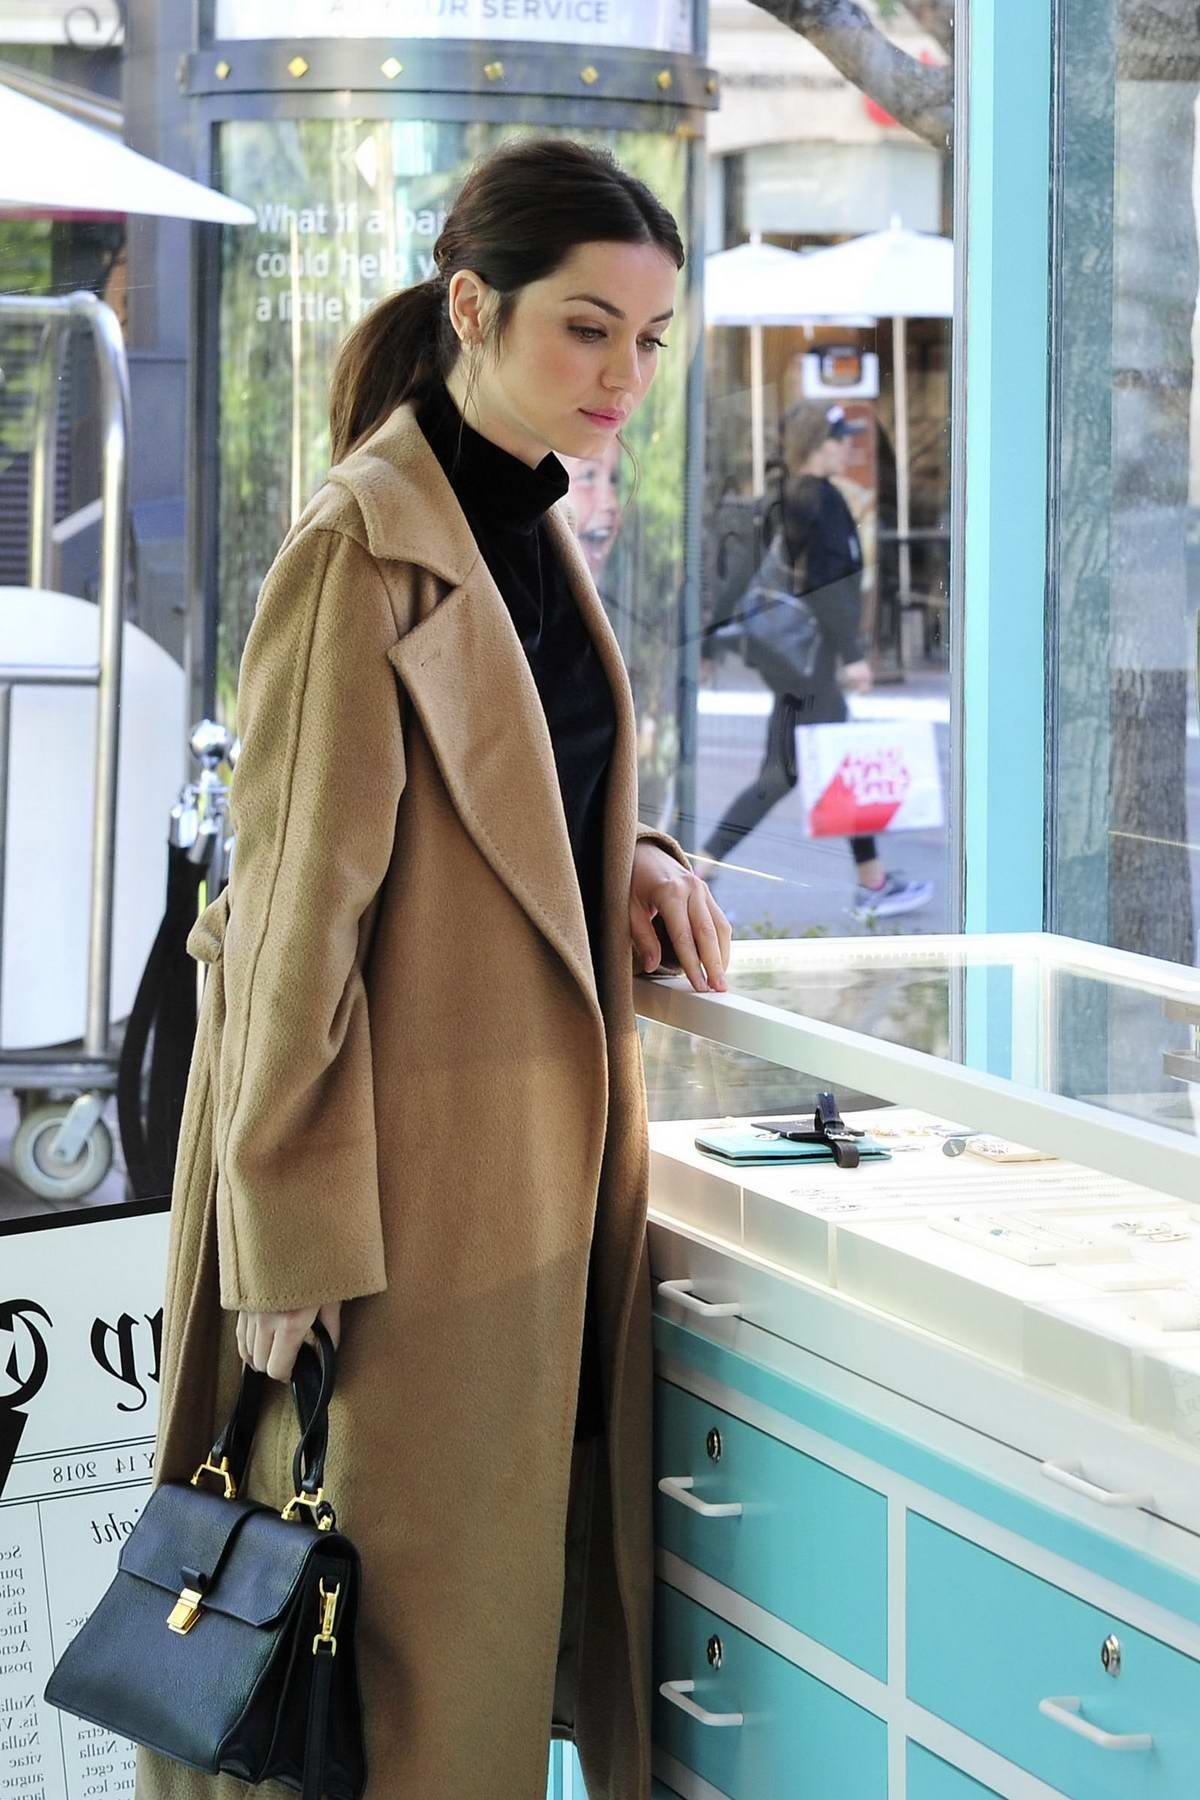 Ana de Armas shops at the Tiffany & Co. pop-up store at The Grove in Los Angeles